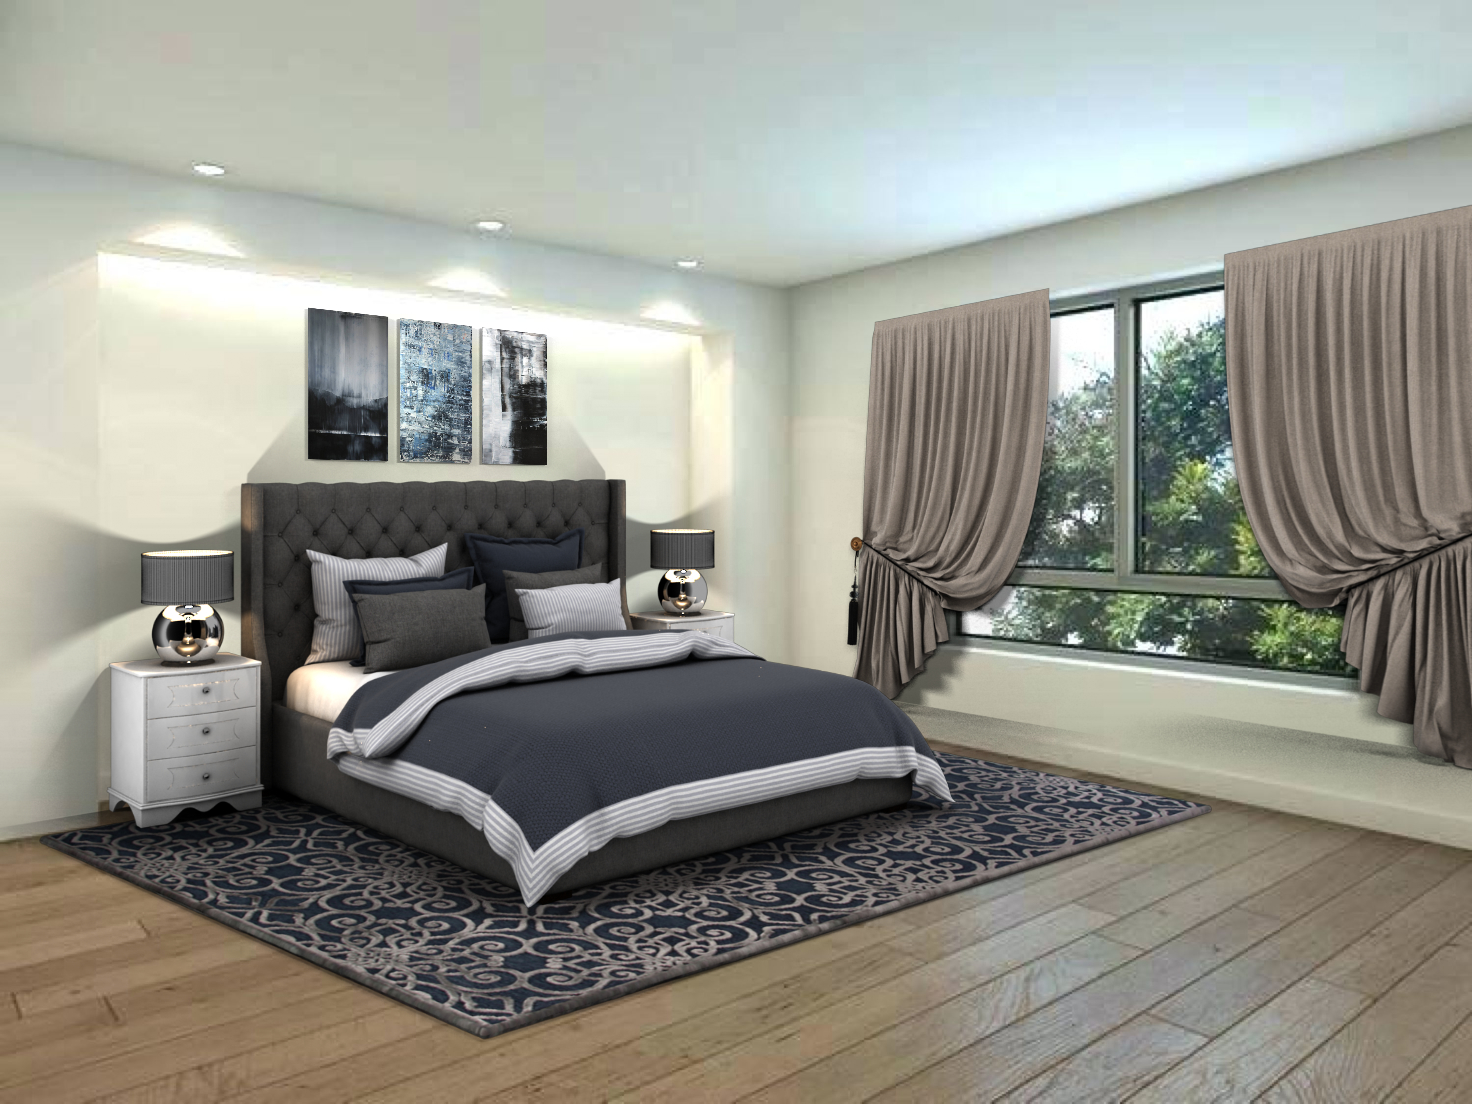 Bedroom 6 - Luxury